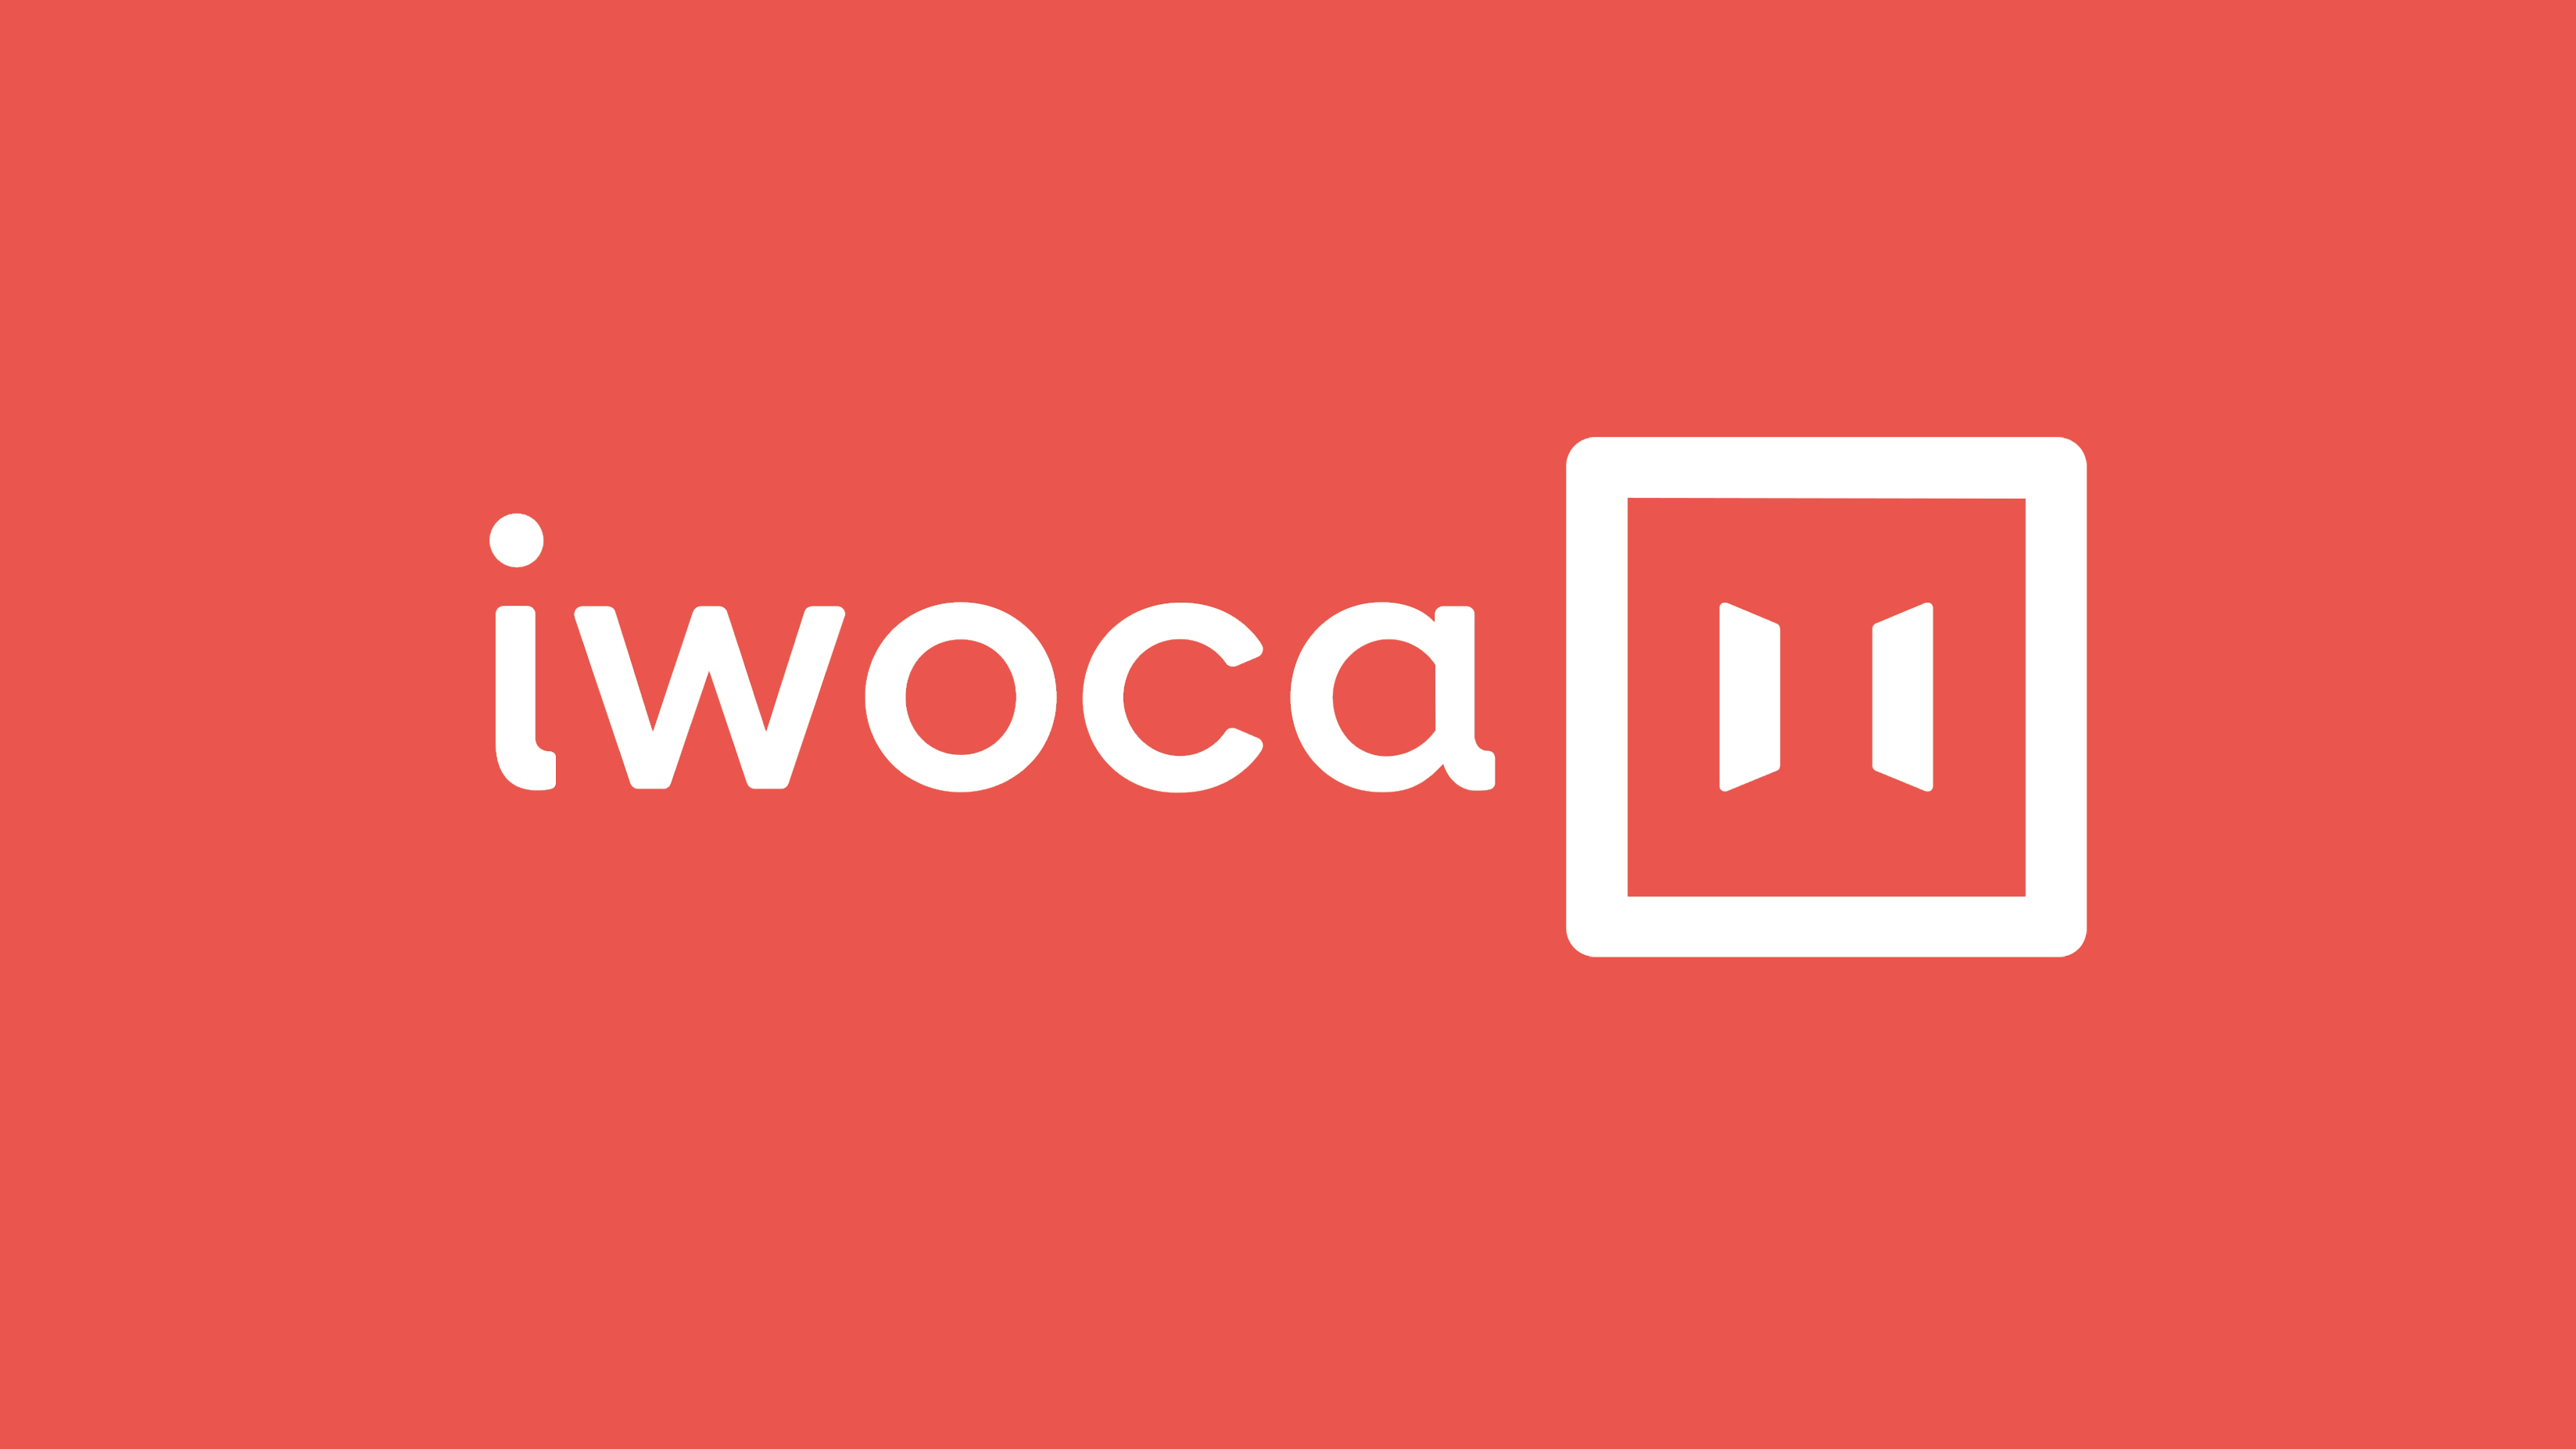 New iwoca Index Identifies Cash Flow as Key Reason for SMEs Applying for Finance